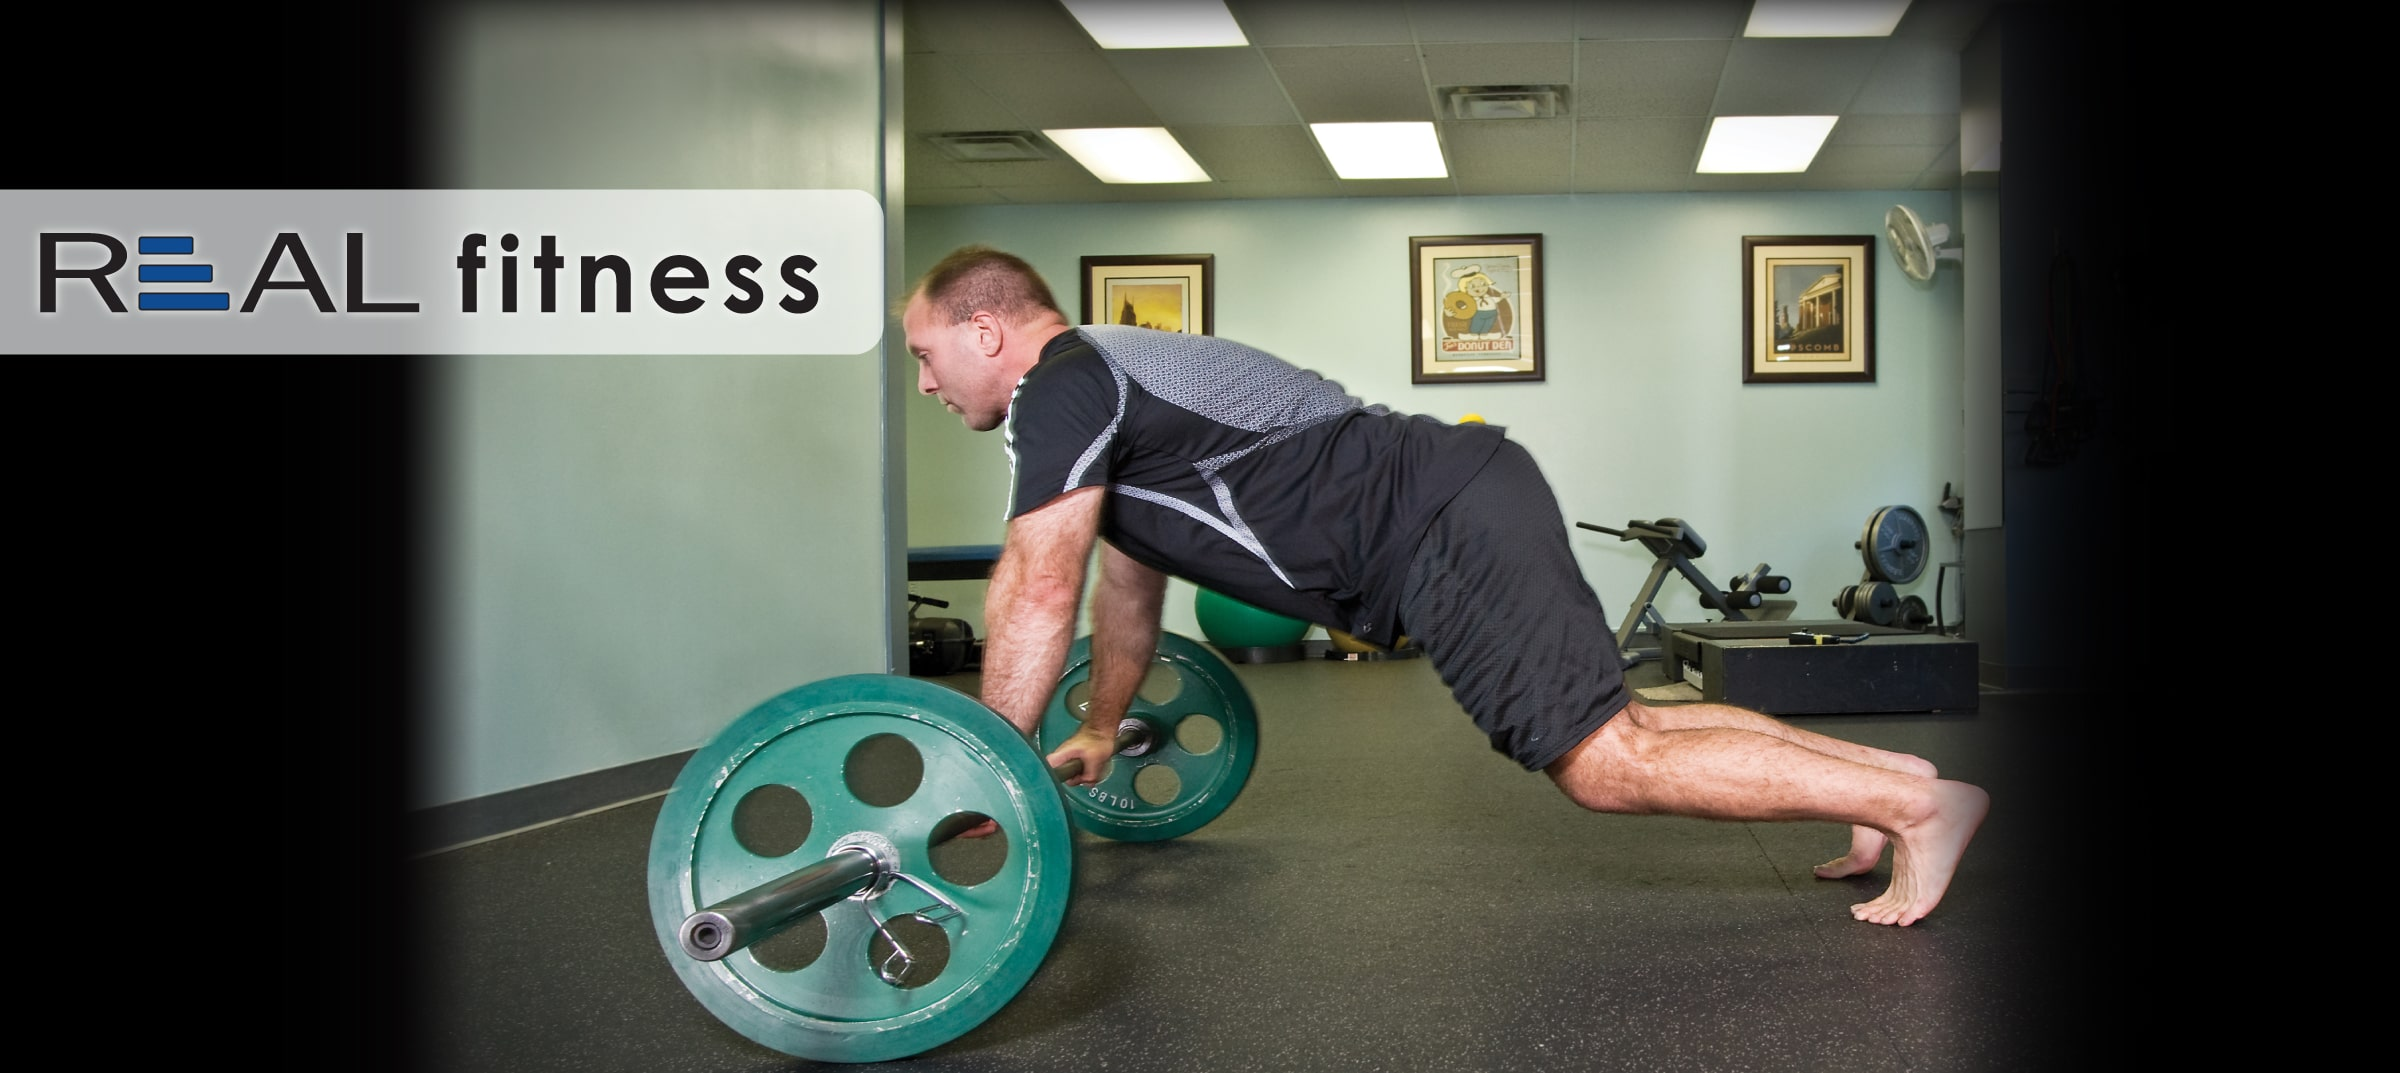 STEPS Fitness Personal Training Center